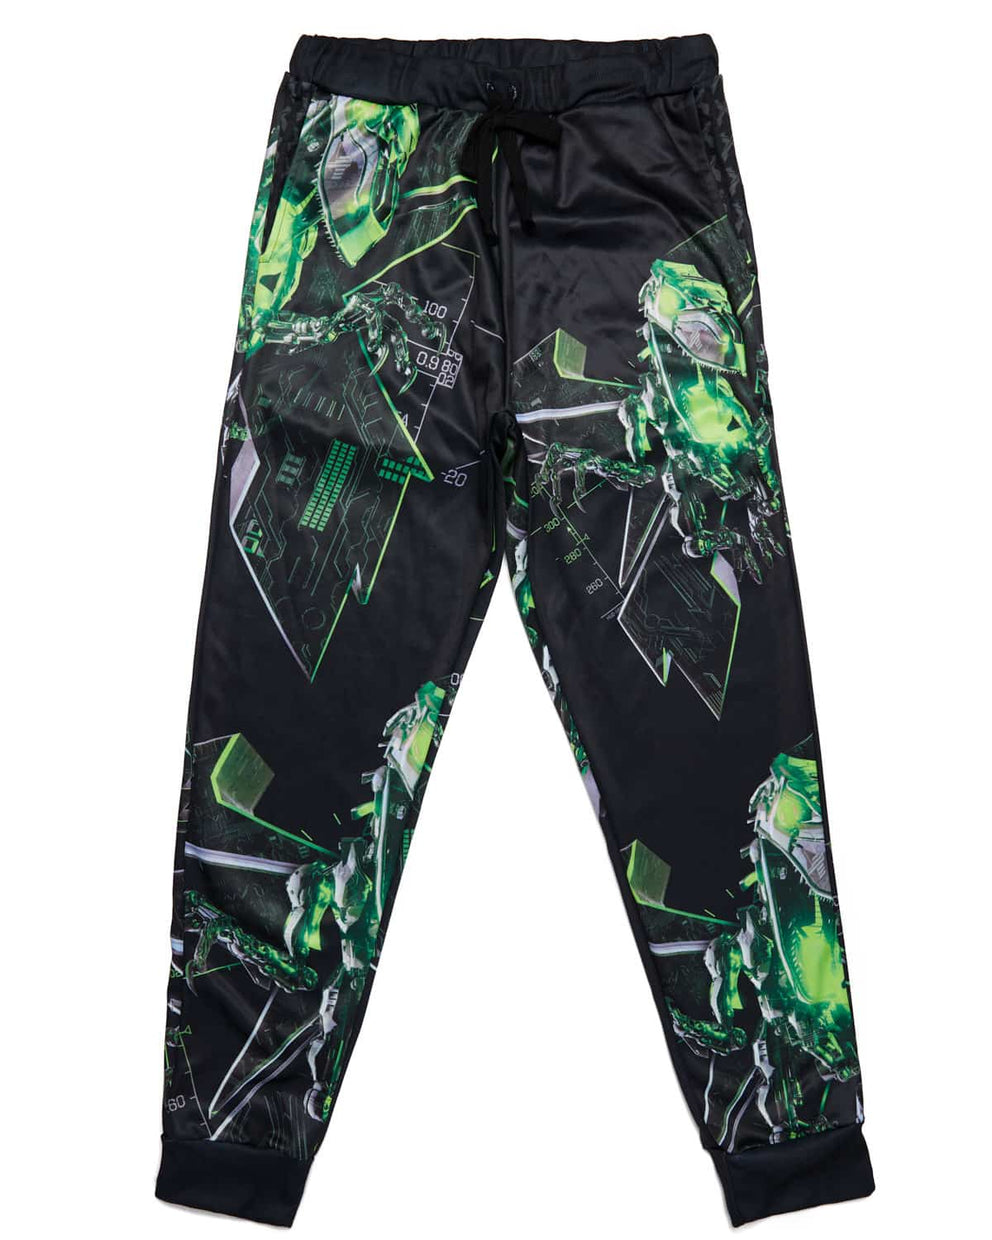 Excision 'Magnetite' Joggers - Black/Green